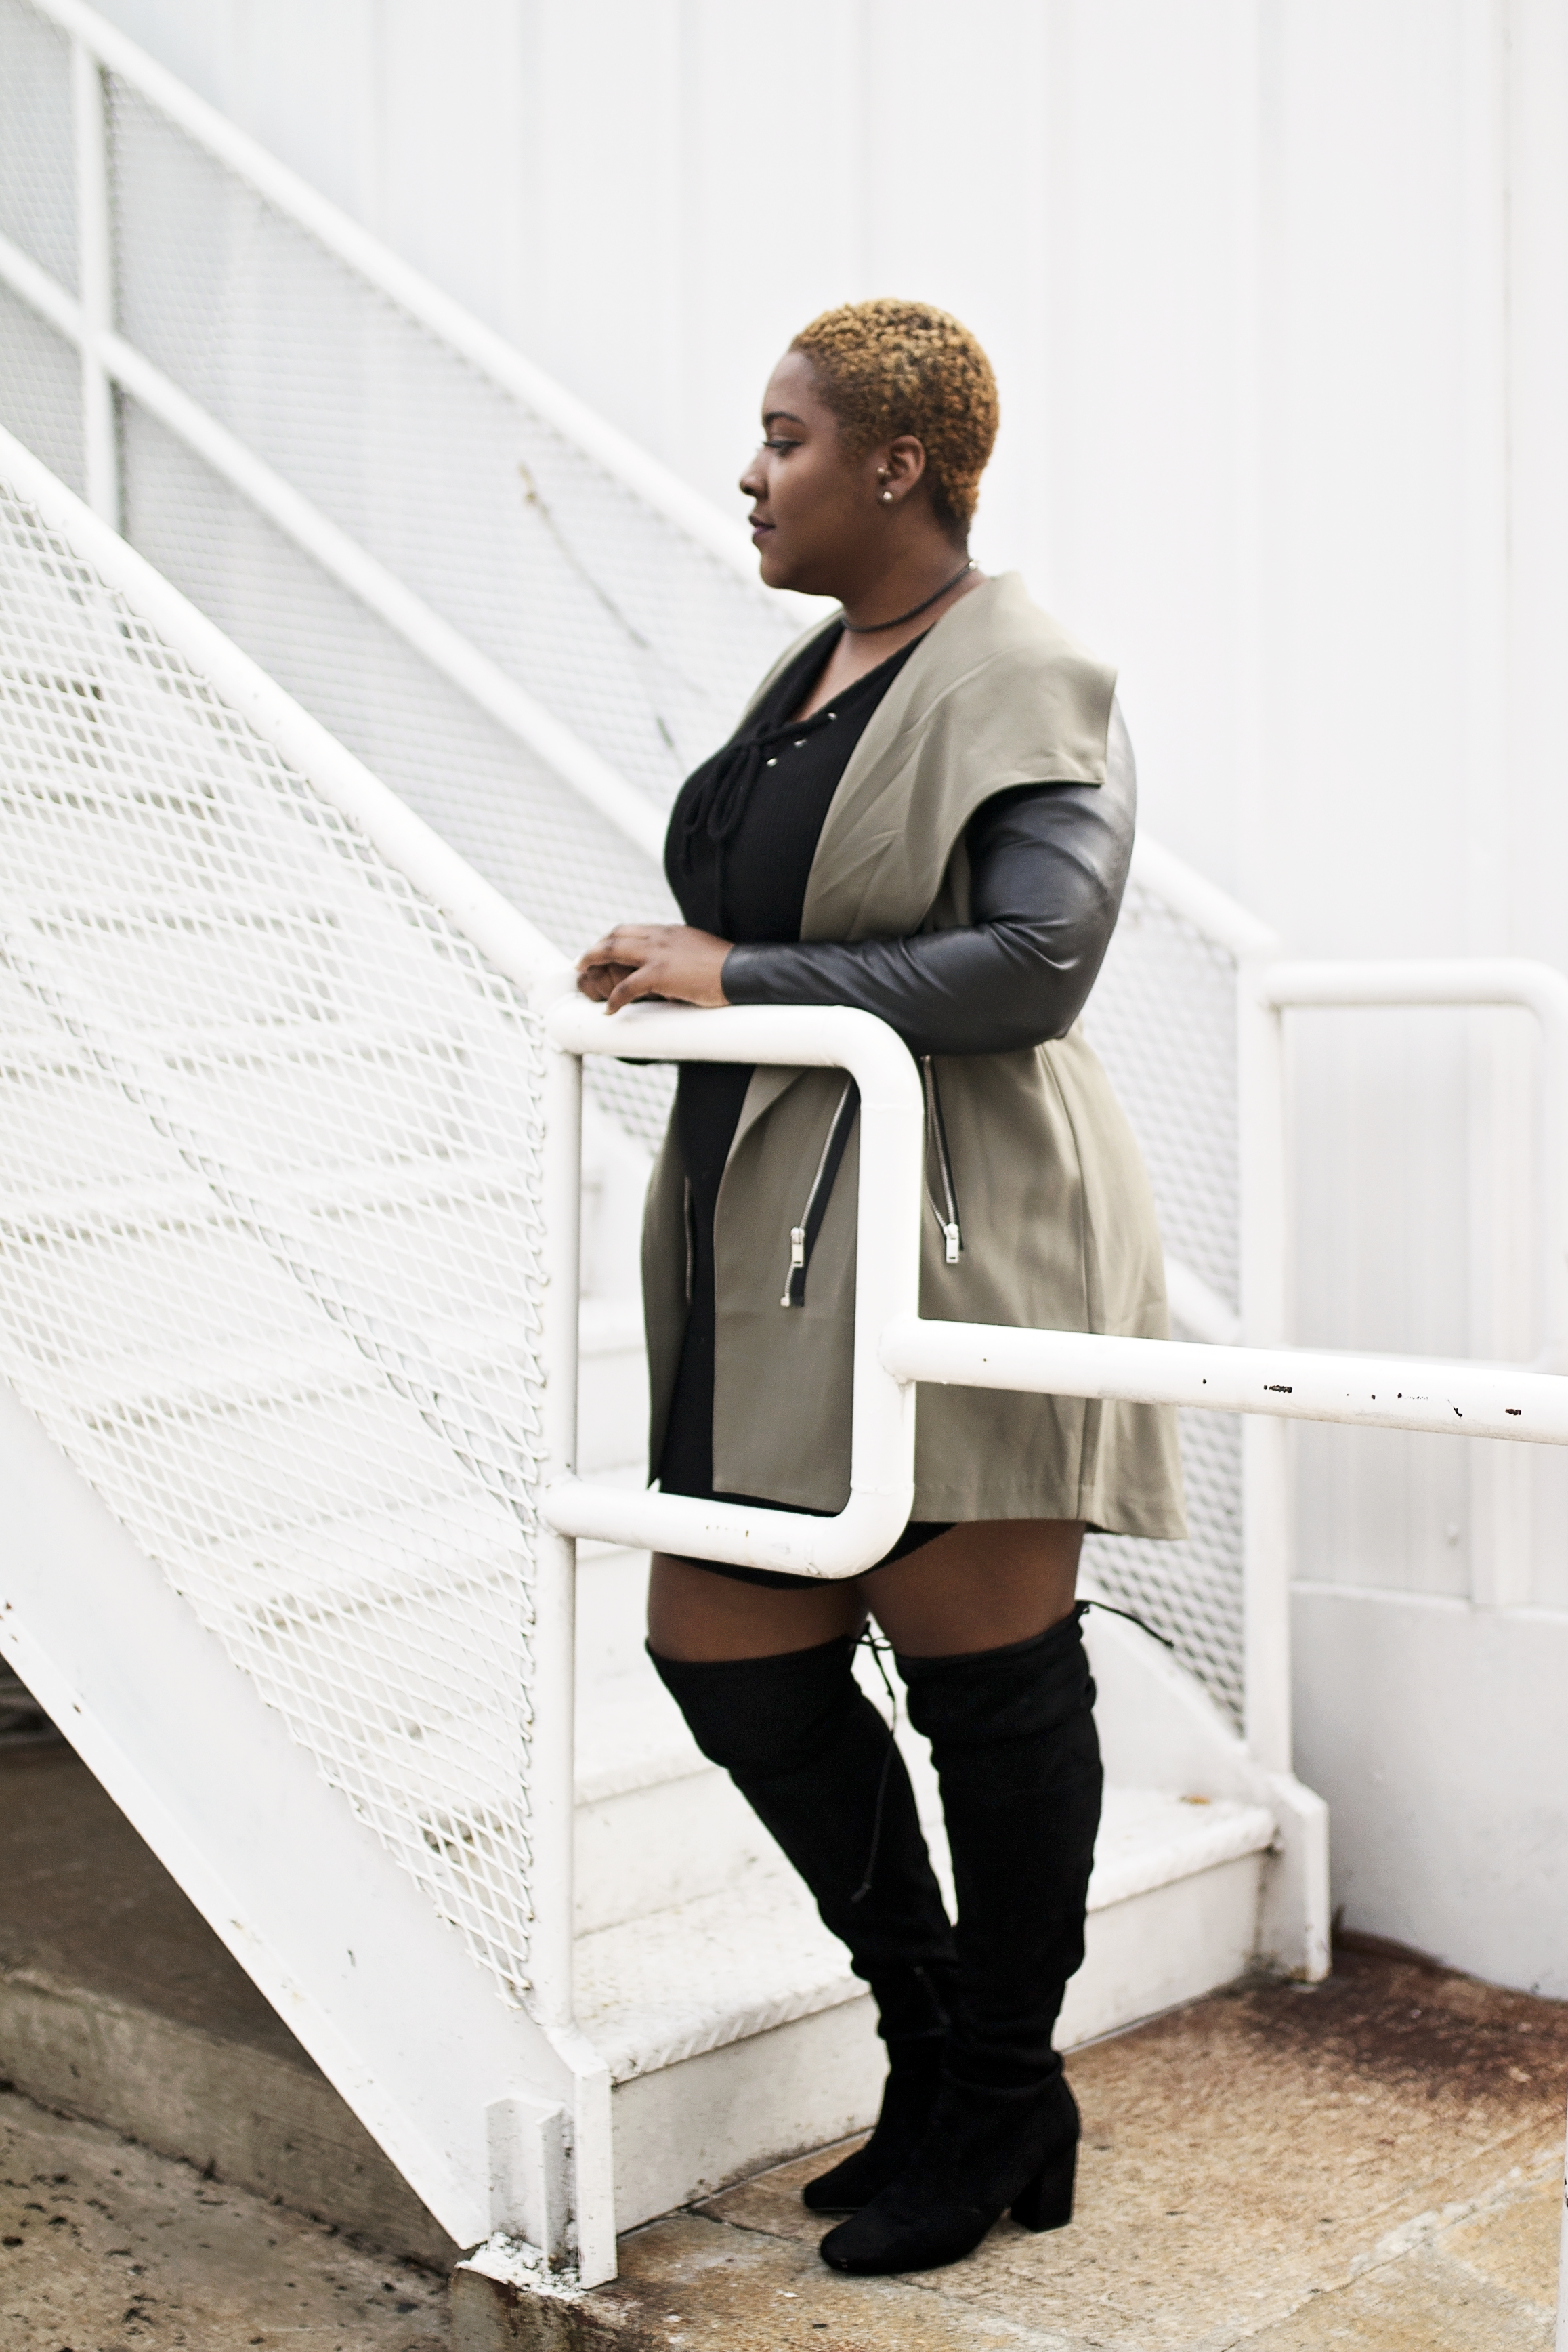 Leather and Olive   The perfect color duo for this fall and winter season.